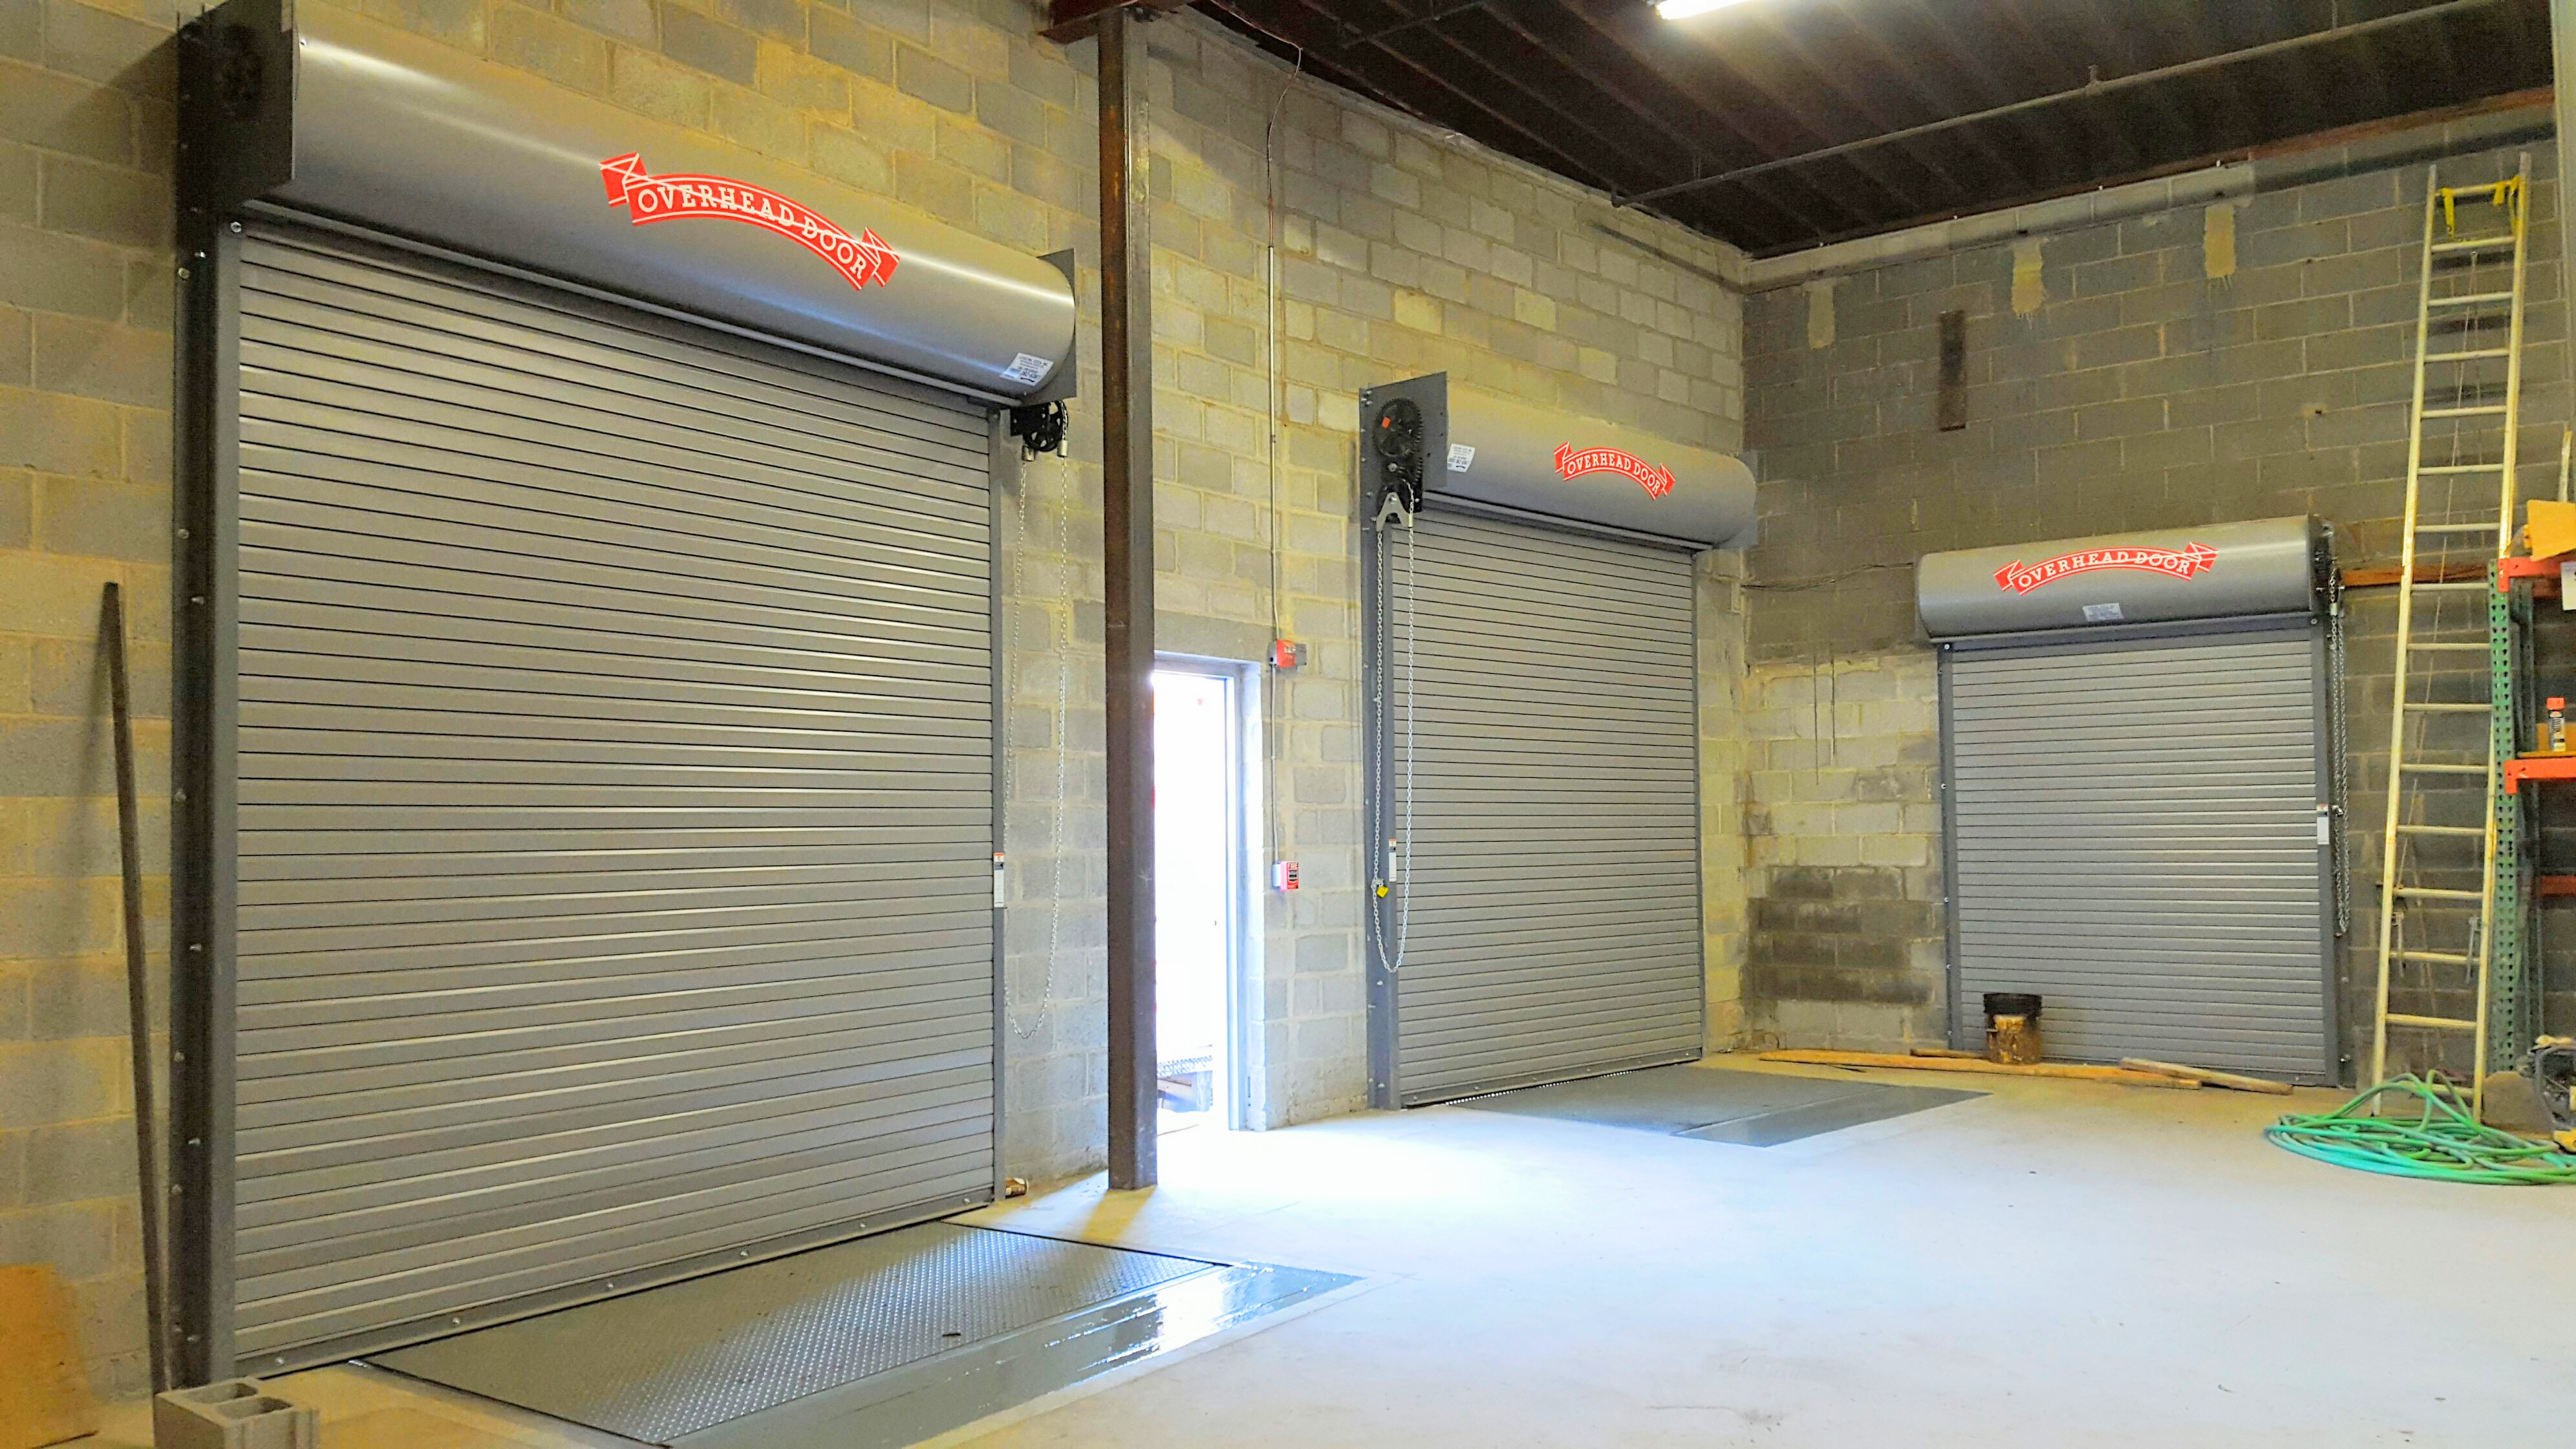 Insulated Loading Dock Rollup Doors Gates Bergen Hudson County, NJ